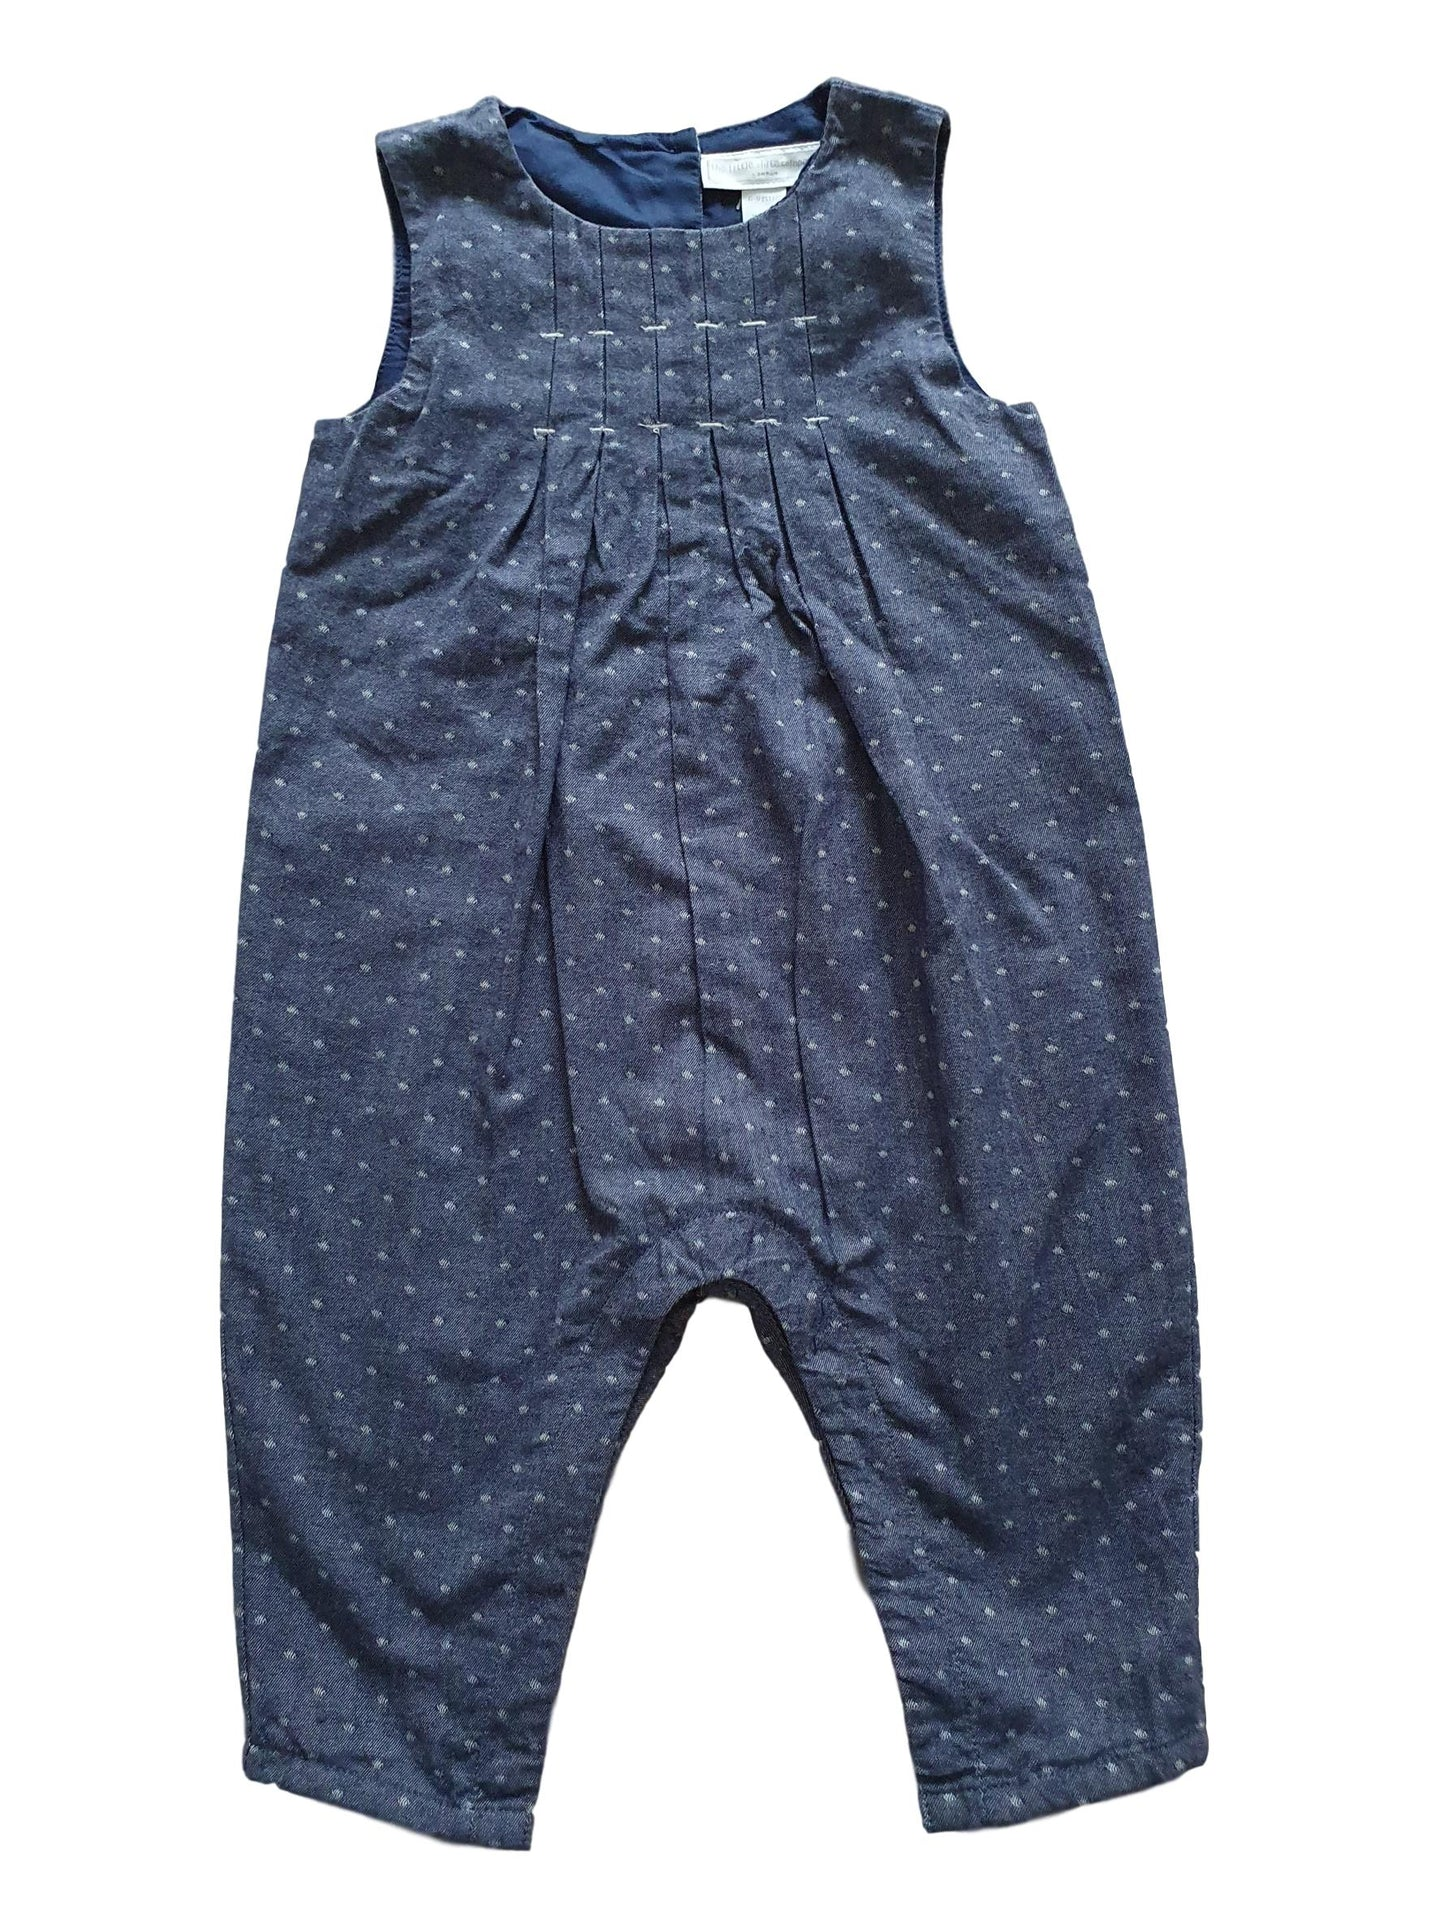 THE LITTLE WHITE COMPANY girl dungaree 6-9m